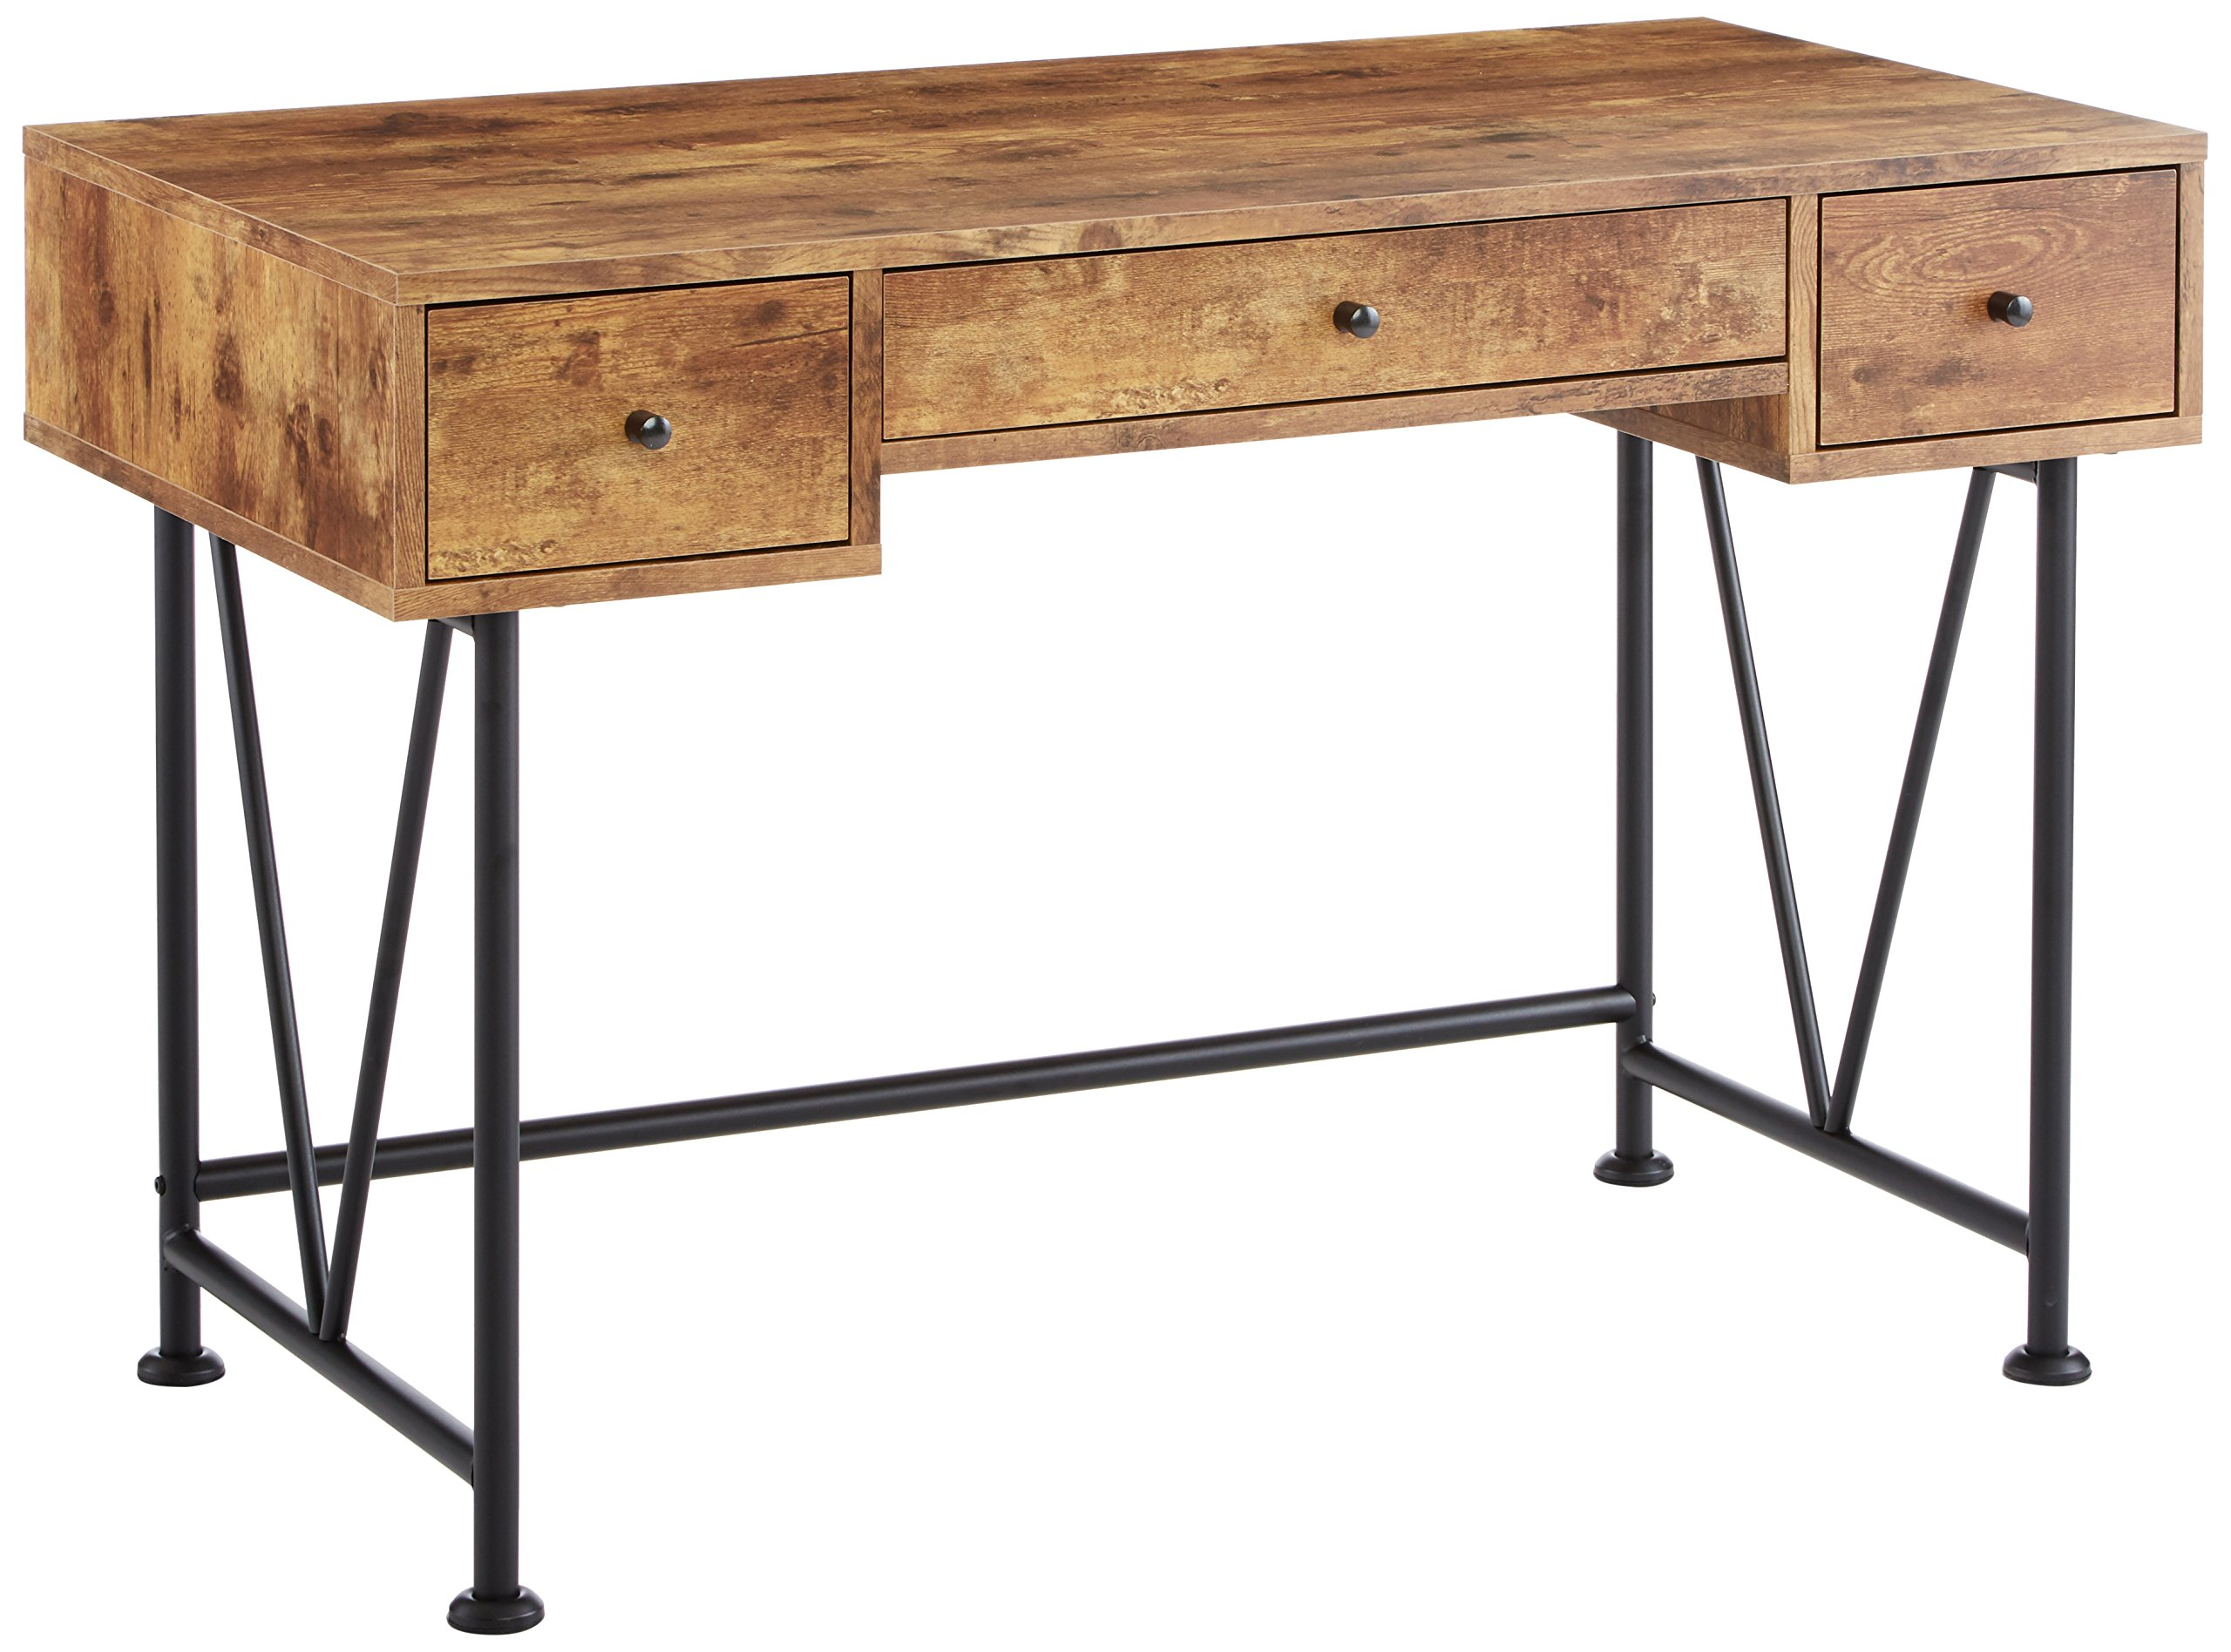 Coaster Home Furnishings  Analiese Modern Rustic Industrial Three Drawer Writing Desk - Antique Nutmeg